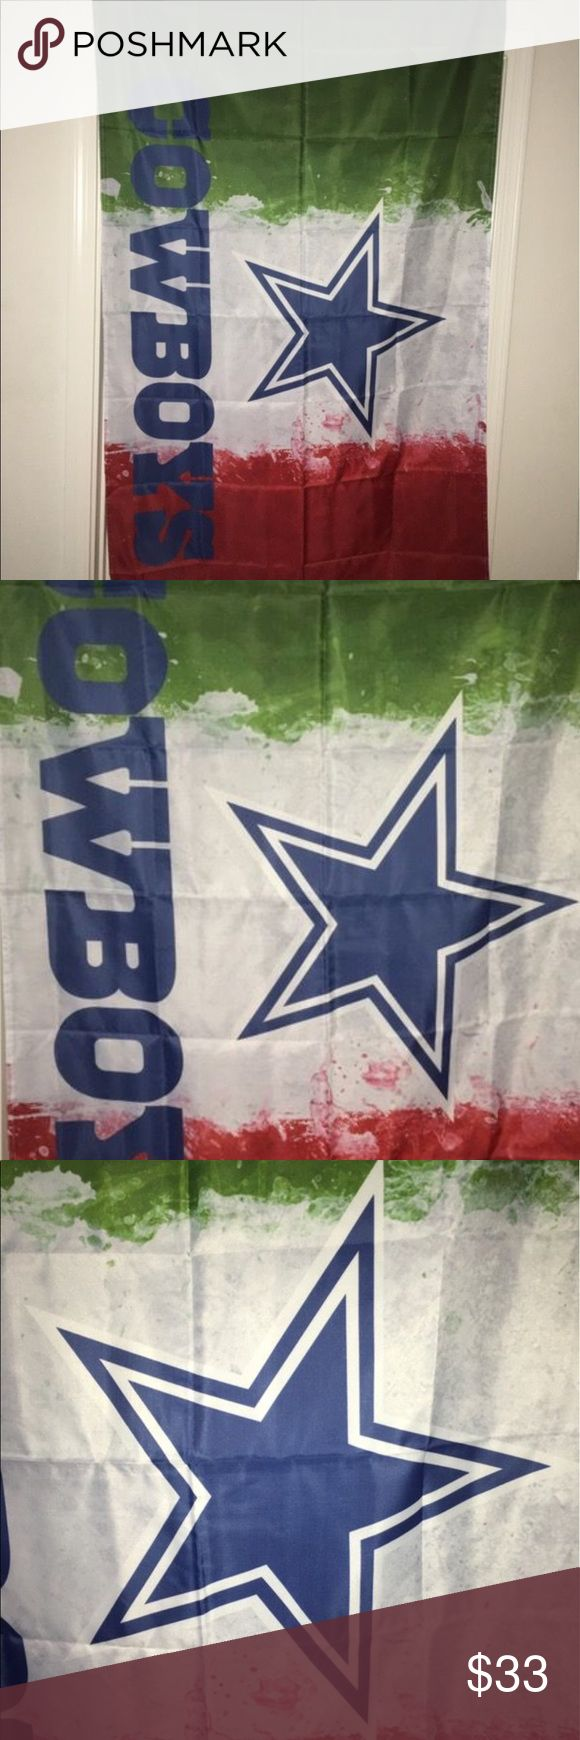 Dallas Cowboys pride of Mexico team flag 3'X5' Thank you for viewing my listing, for sale is a NFL, Dallas Cowboys, pride of Mexico, approximate 3' x 5', team flag.  Item is brand-new in the package. If you have any questions or would like additional photos please feel free to ask.  If you love the country of Mexico, why not show your pride for Mexico and your favorite football team the Dallas Cowboys! NFL Accessories